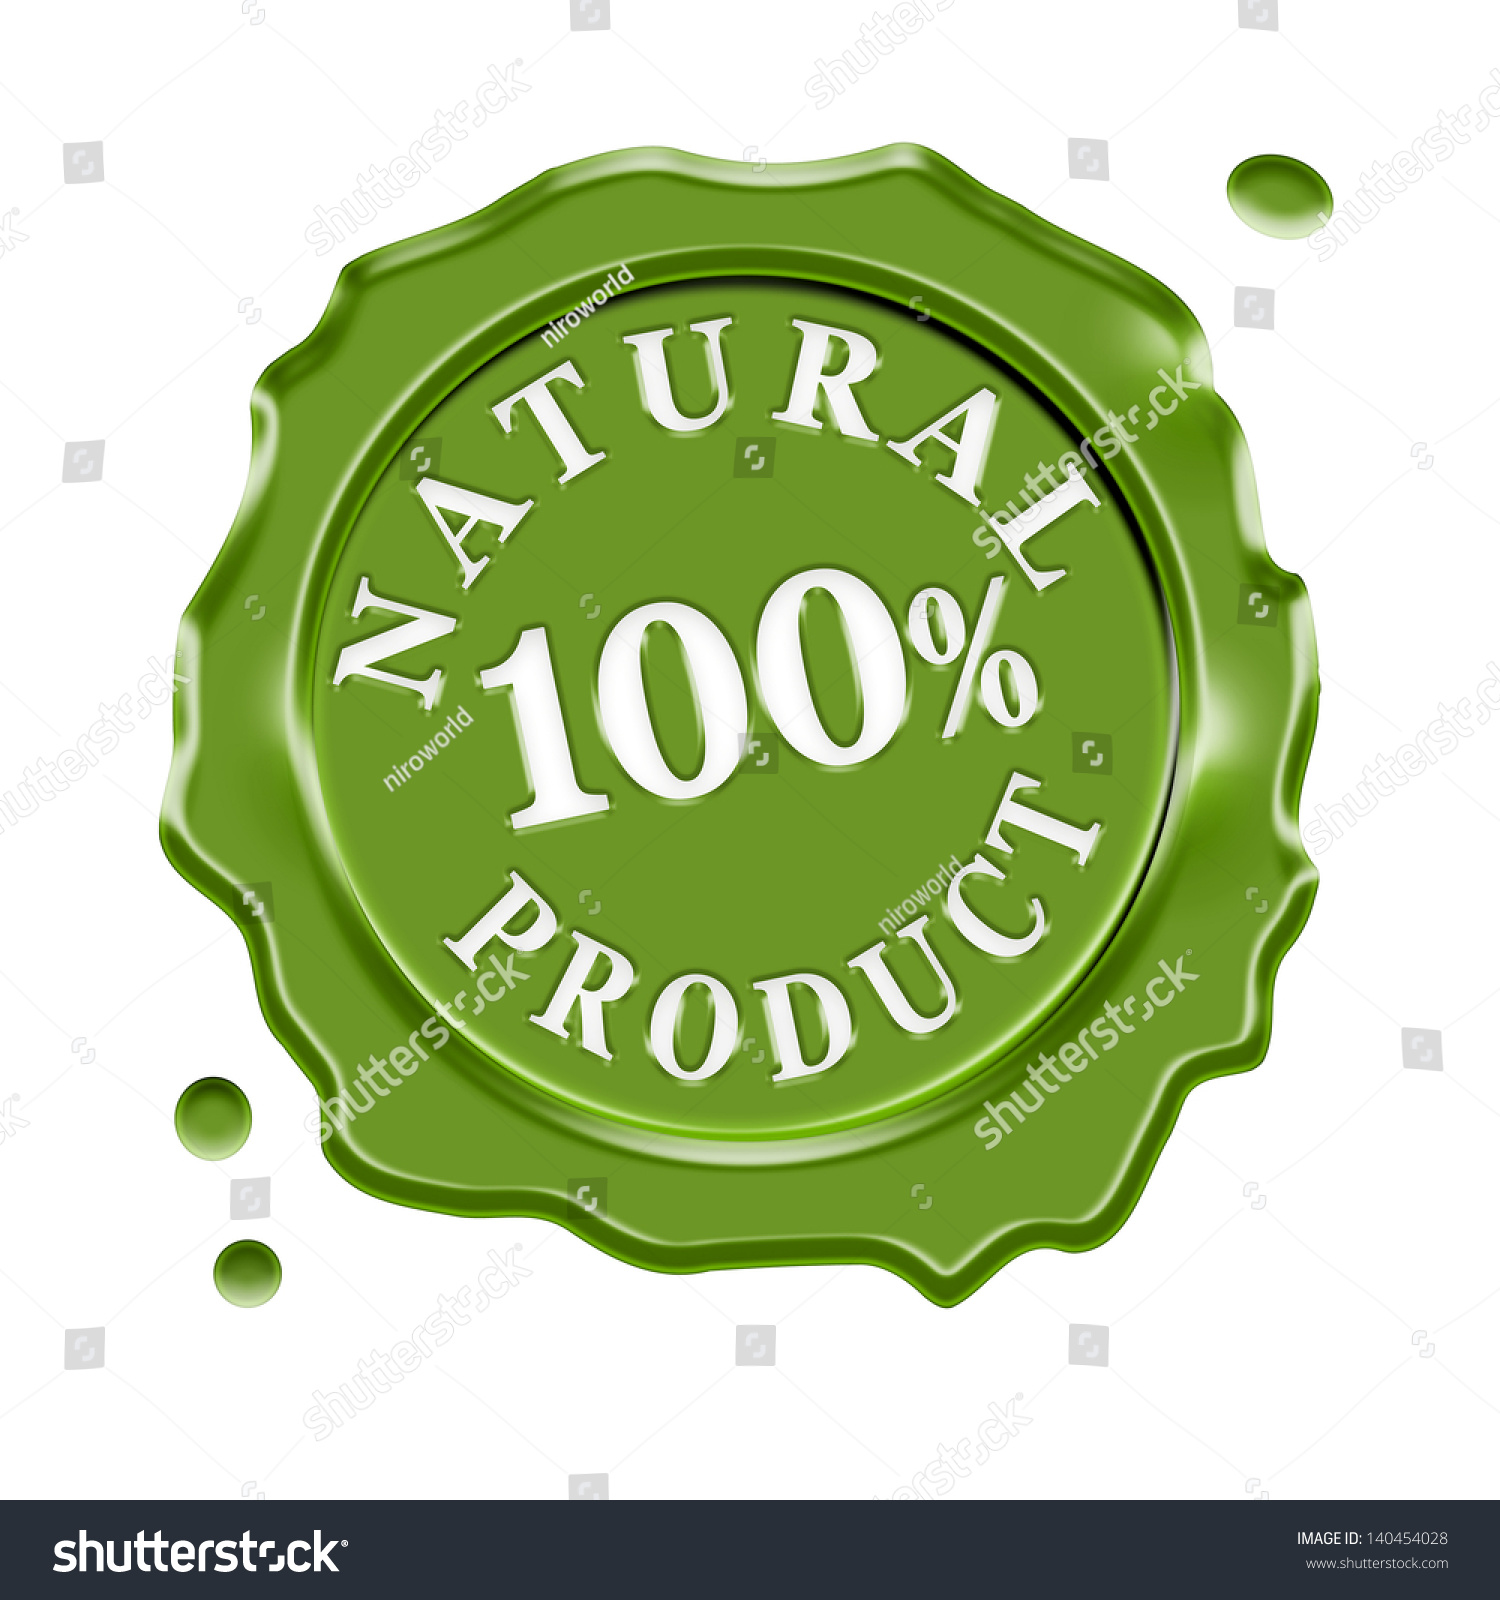 Green wax seal central text 100 stock illustration 140454028 green wax seal with central text 100 percent natural product guarantee symbol for organic and buycottarizona Image collections